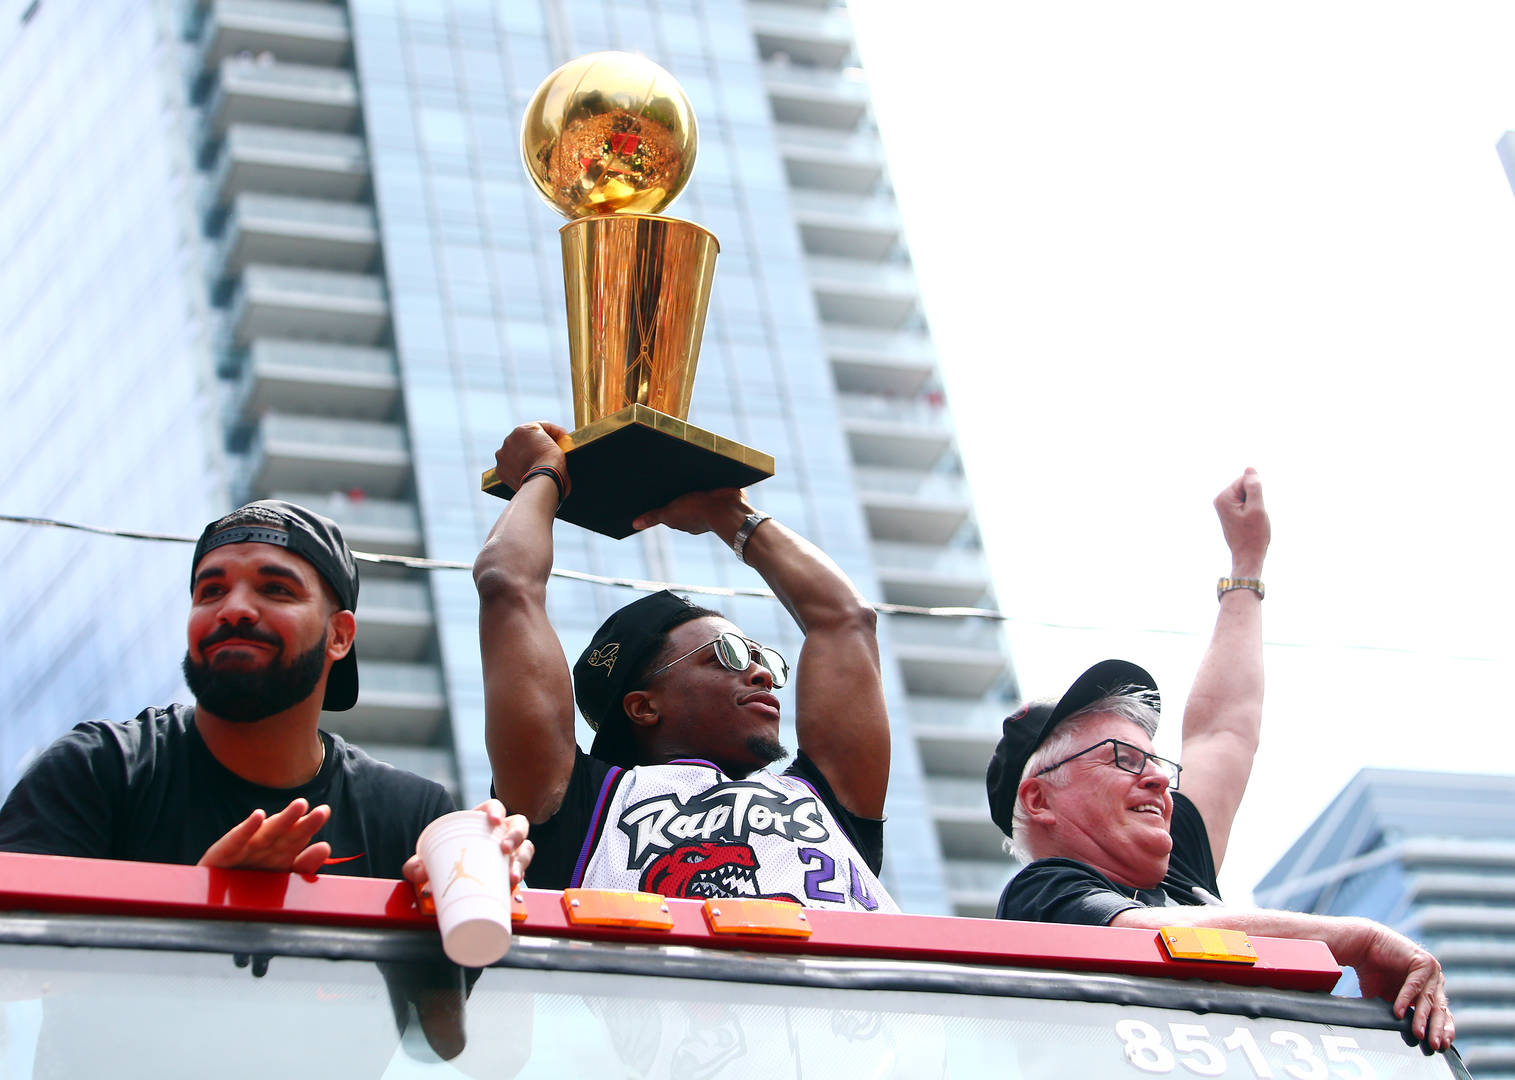 Drake and Kyle Lowry #7 of the Toronto Raptors holds the championship trophy during the Toronto Raptors Victory Parade on June 17, 2019 in Toronto, Canada. The Toronto Raptors beat the Golden State Warriors 4-2 to win the 2019 NBA Finals.